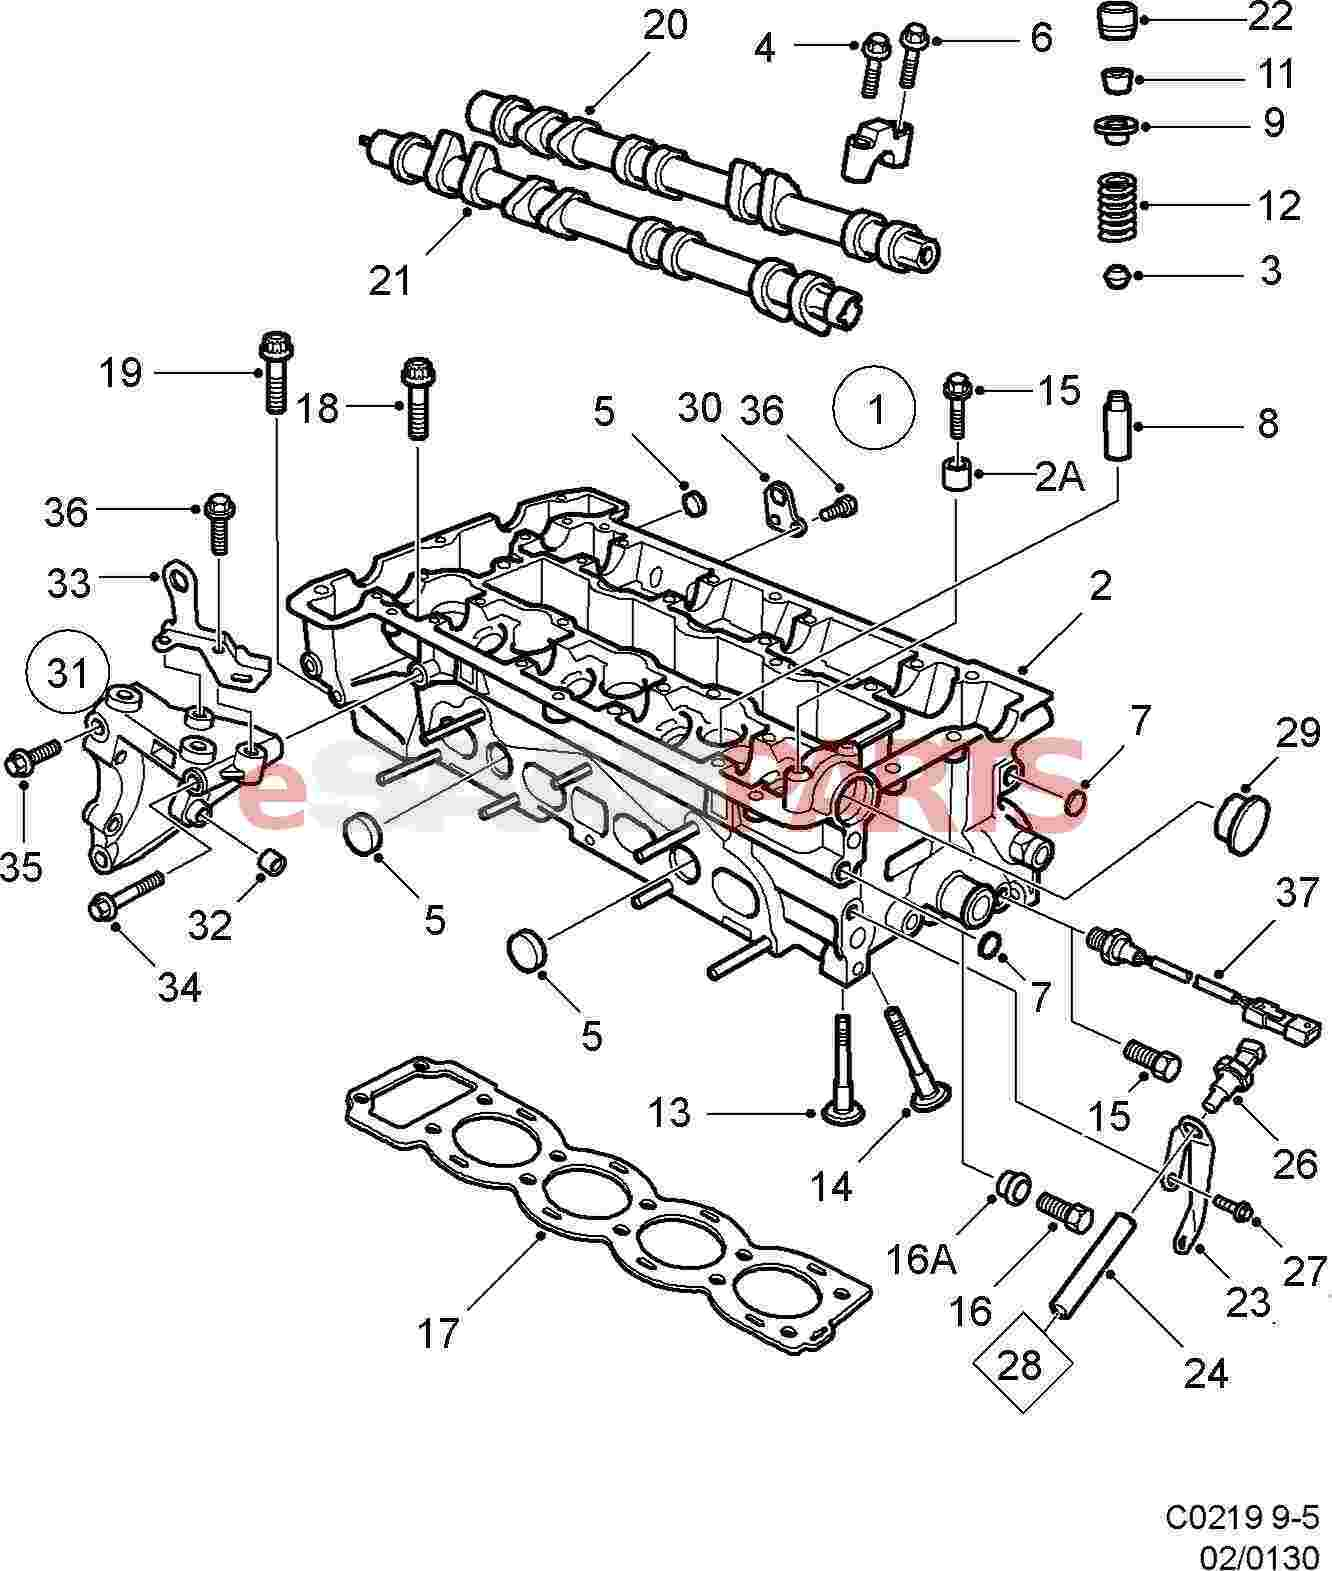 2010 Honda Accord Wiring Diagram. Honda. Wiring Diagrams Instructions